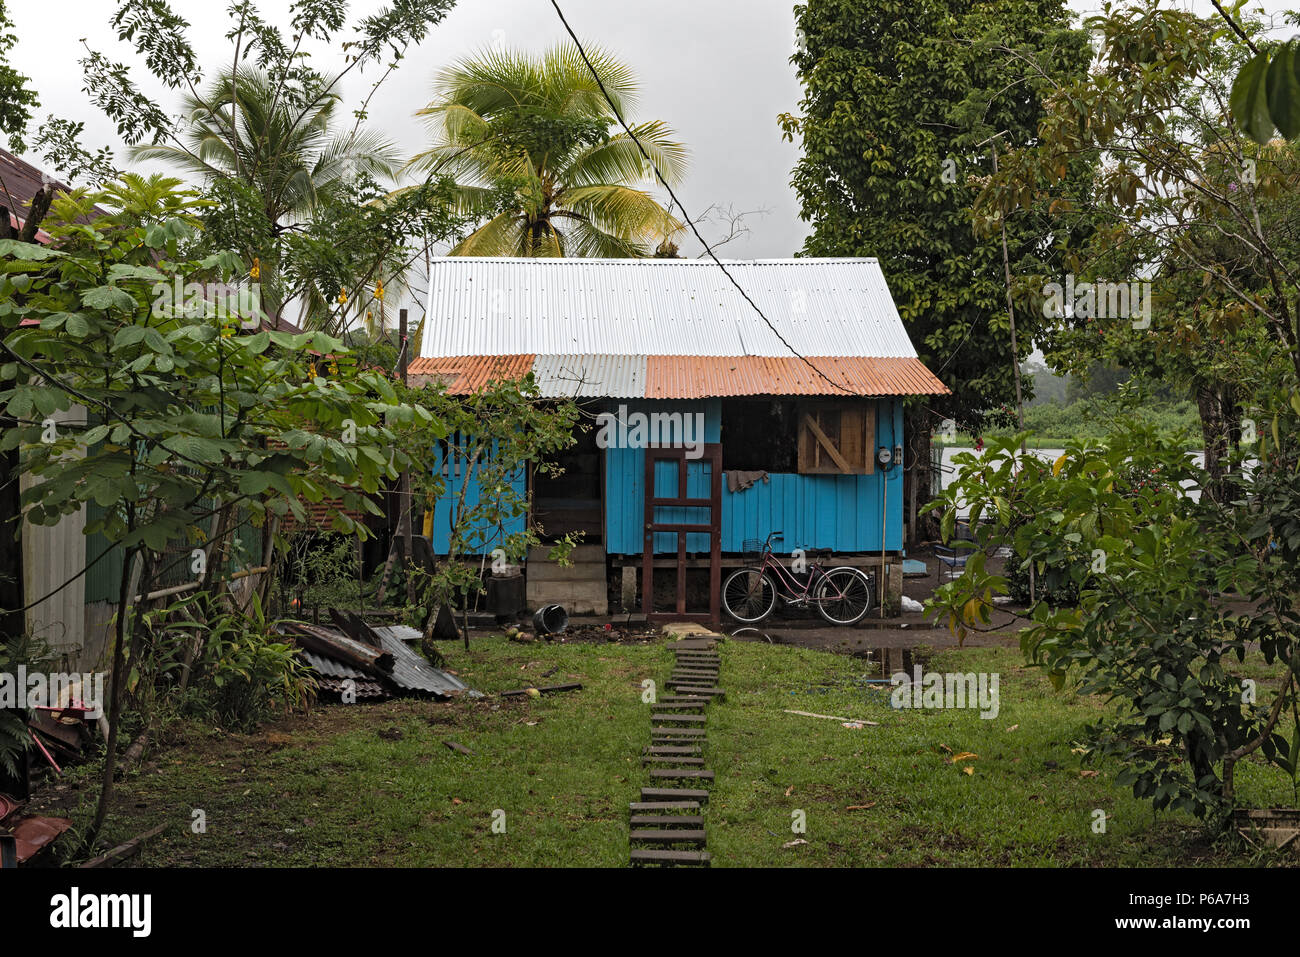 small blue wooden house in the city of tortuguero, costa rica - Stock Image